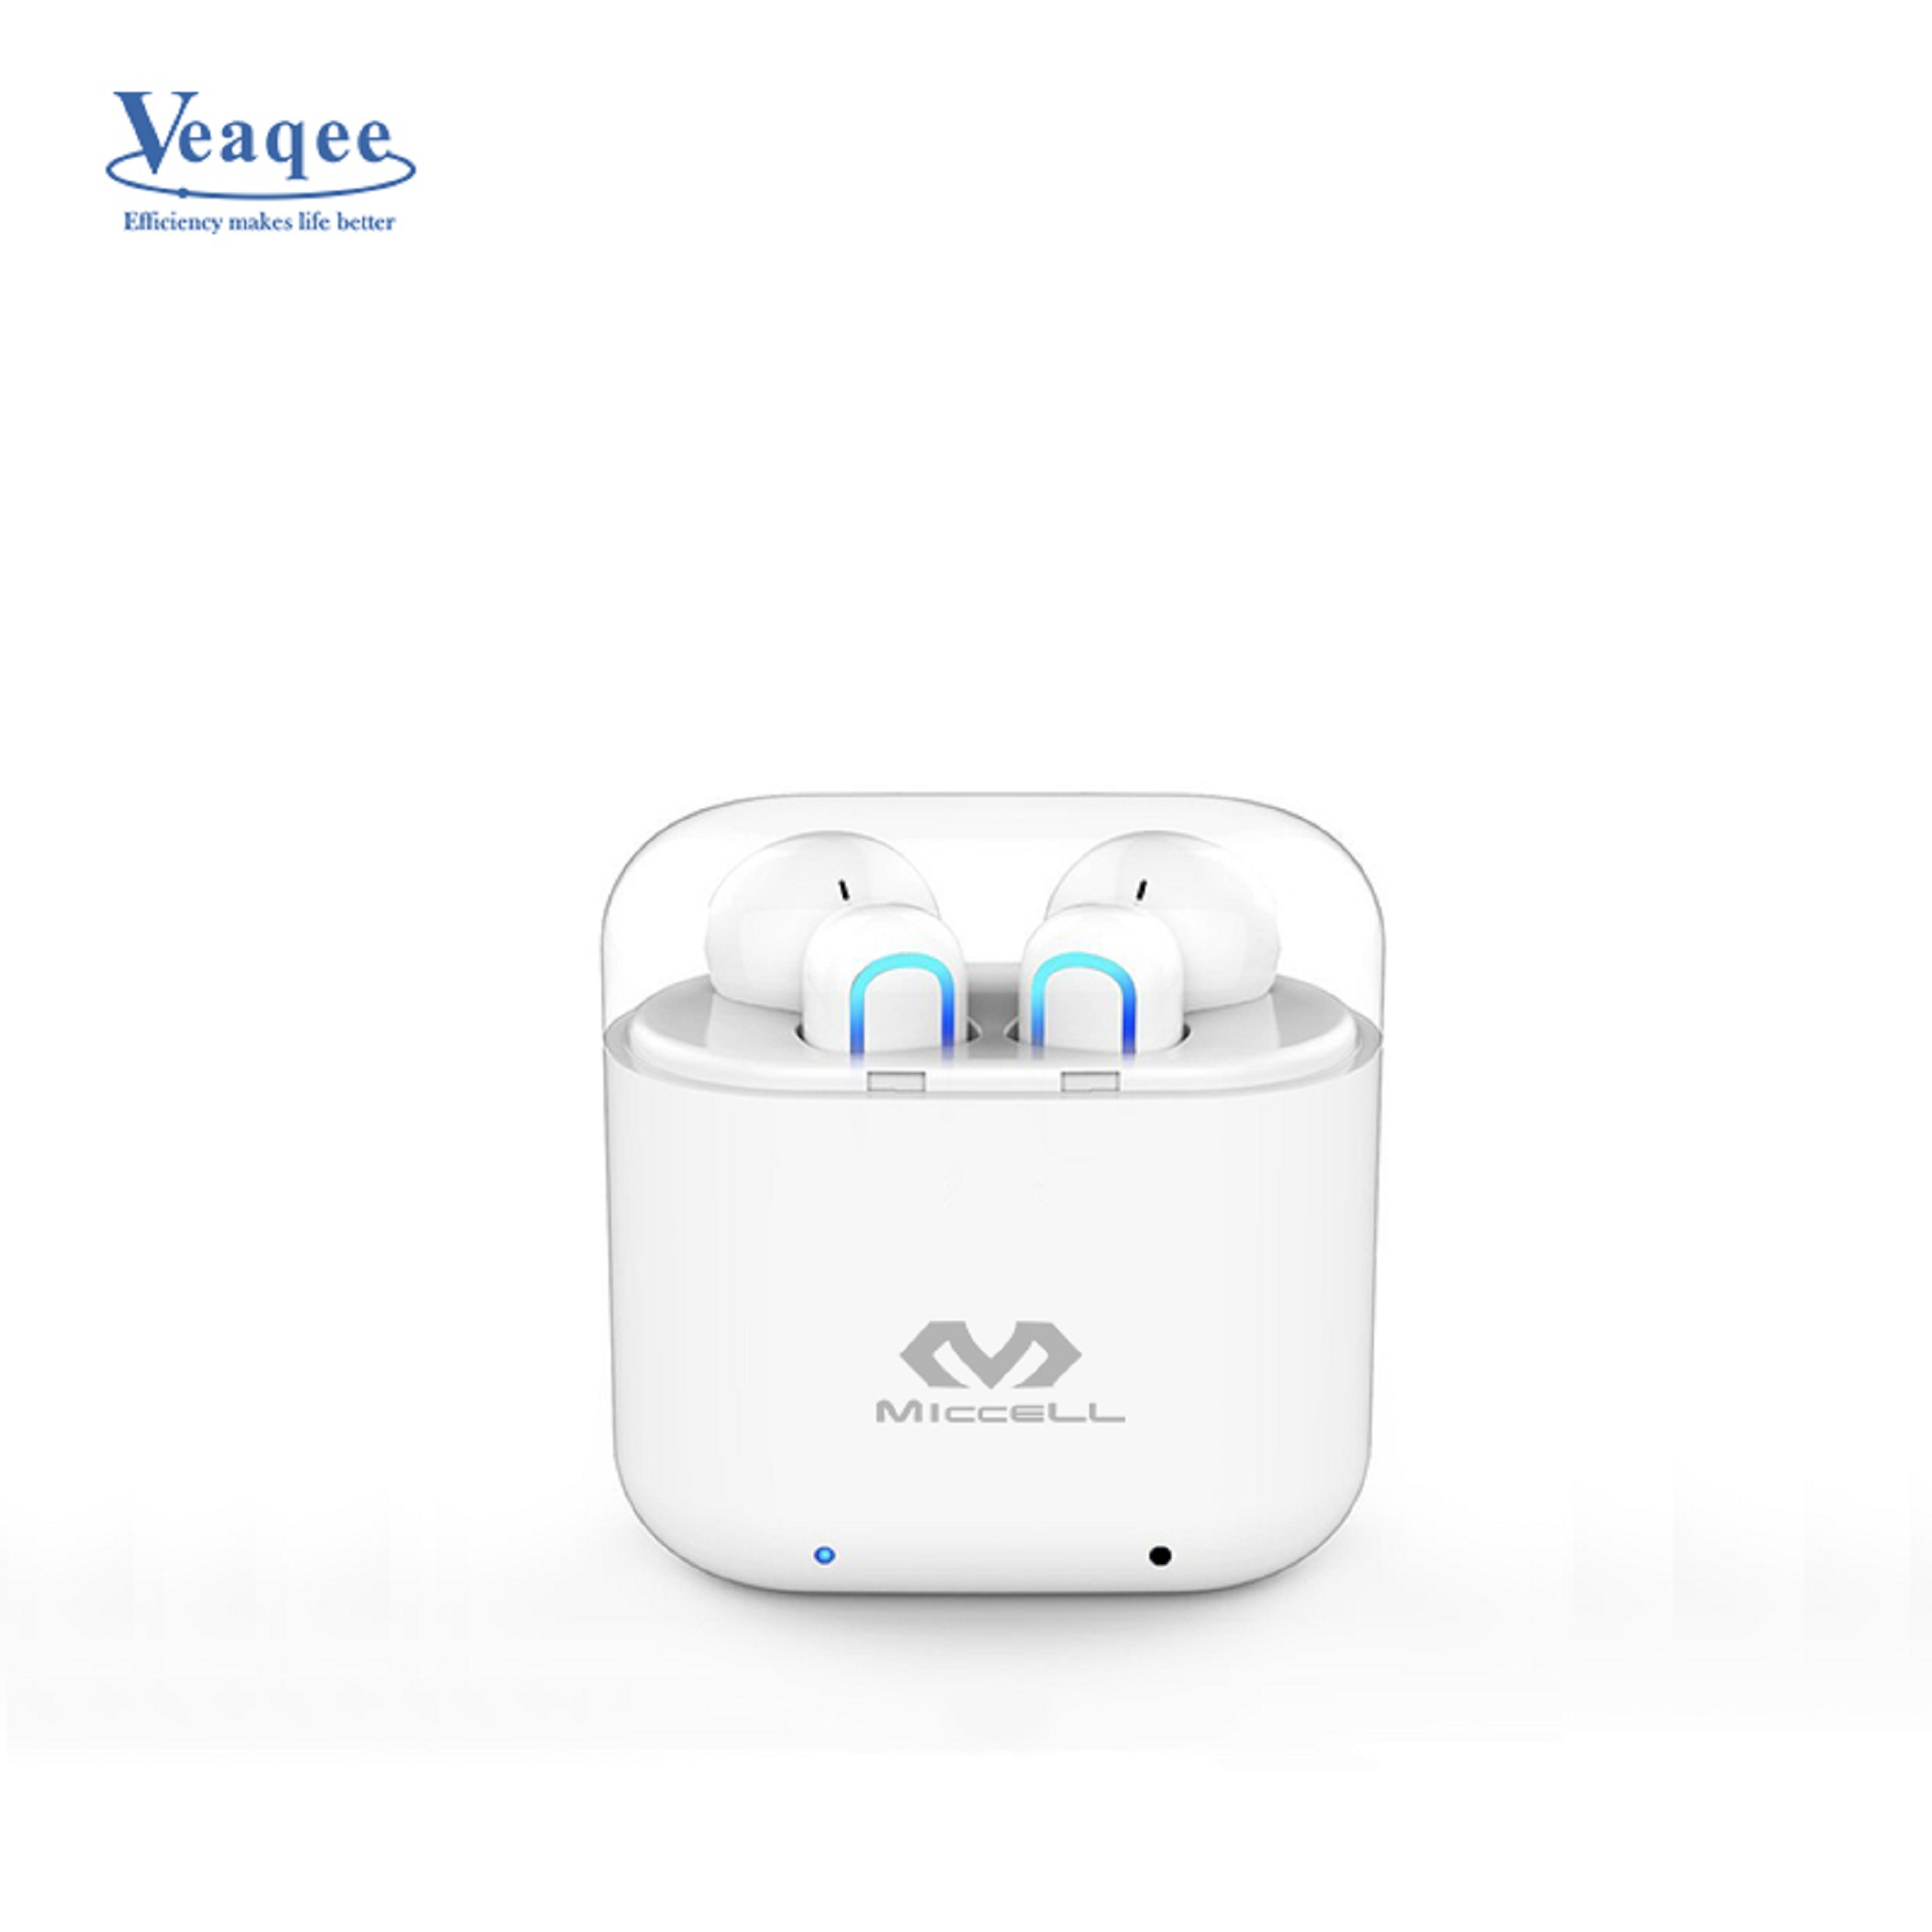 Veaqee TWS true wireless bluetooth earbuds G11- Veaqee